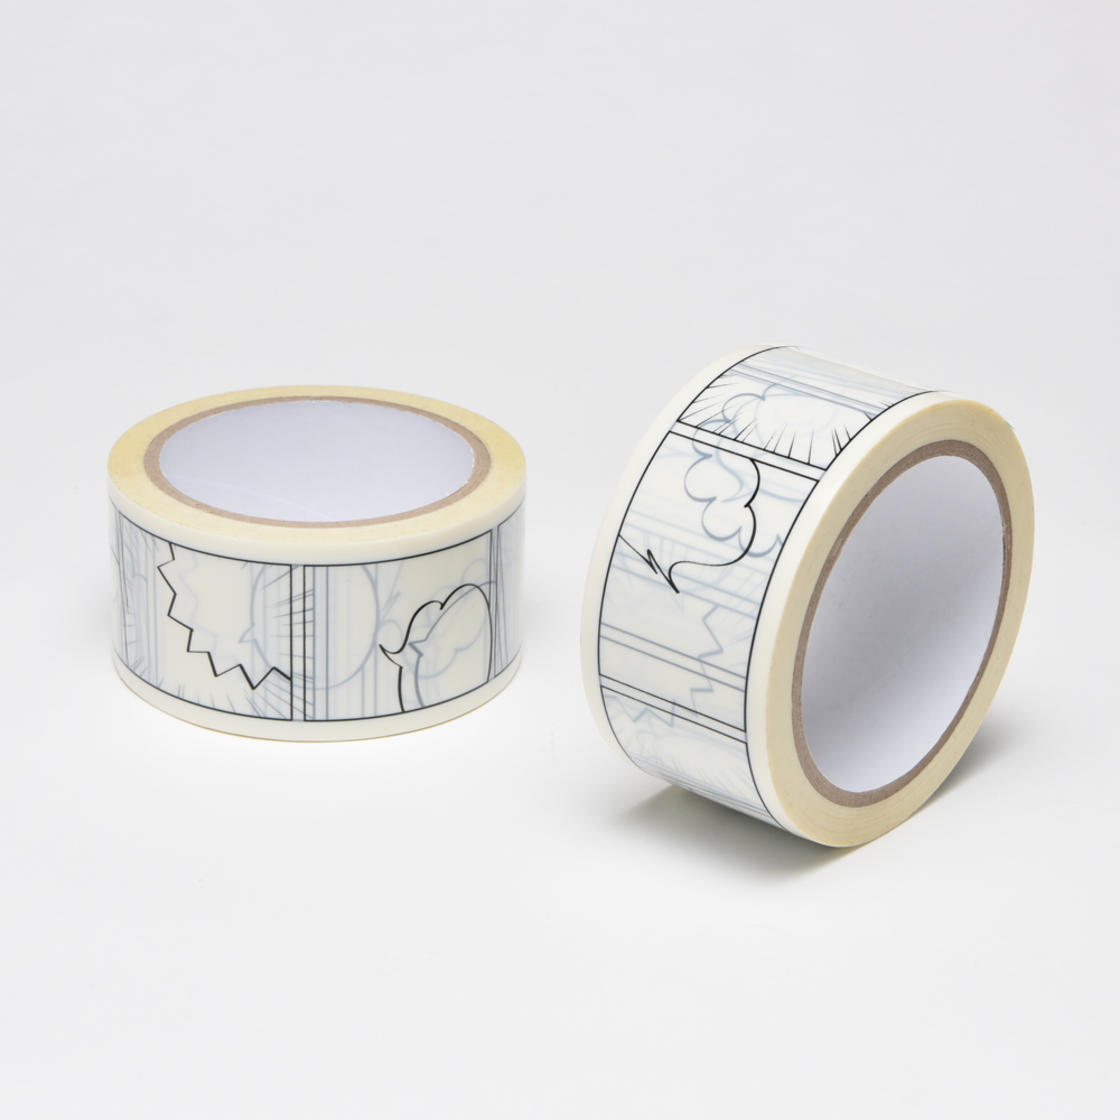 Manga Tape – An adhesive to create comic strips on your packages!